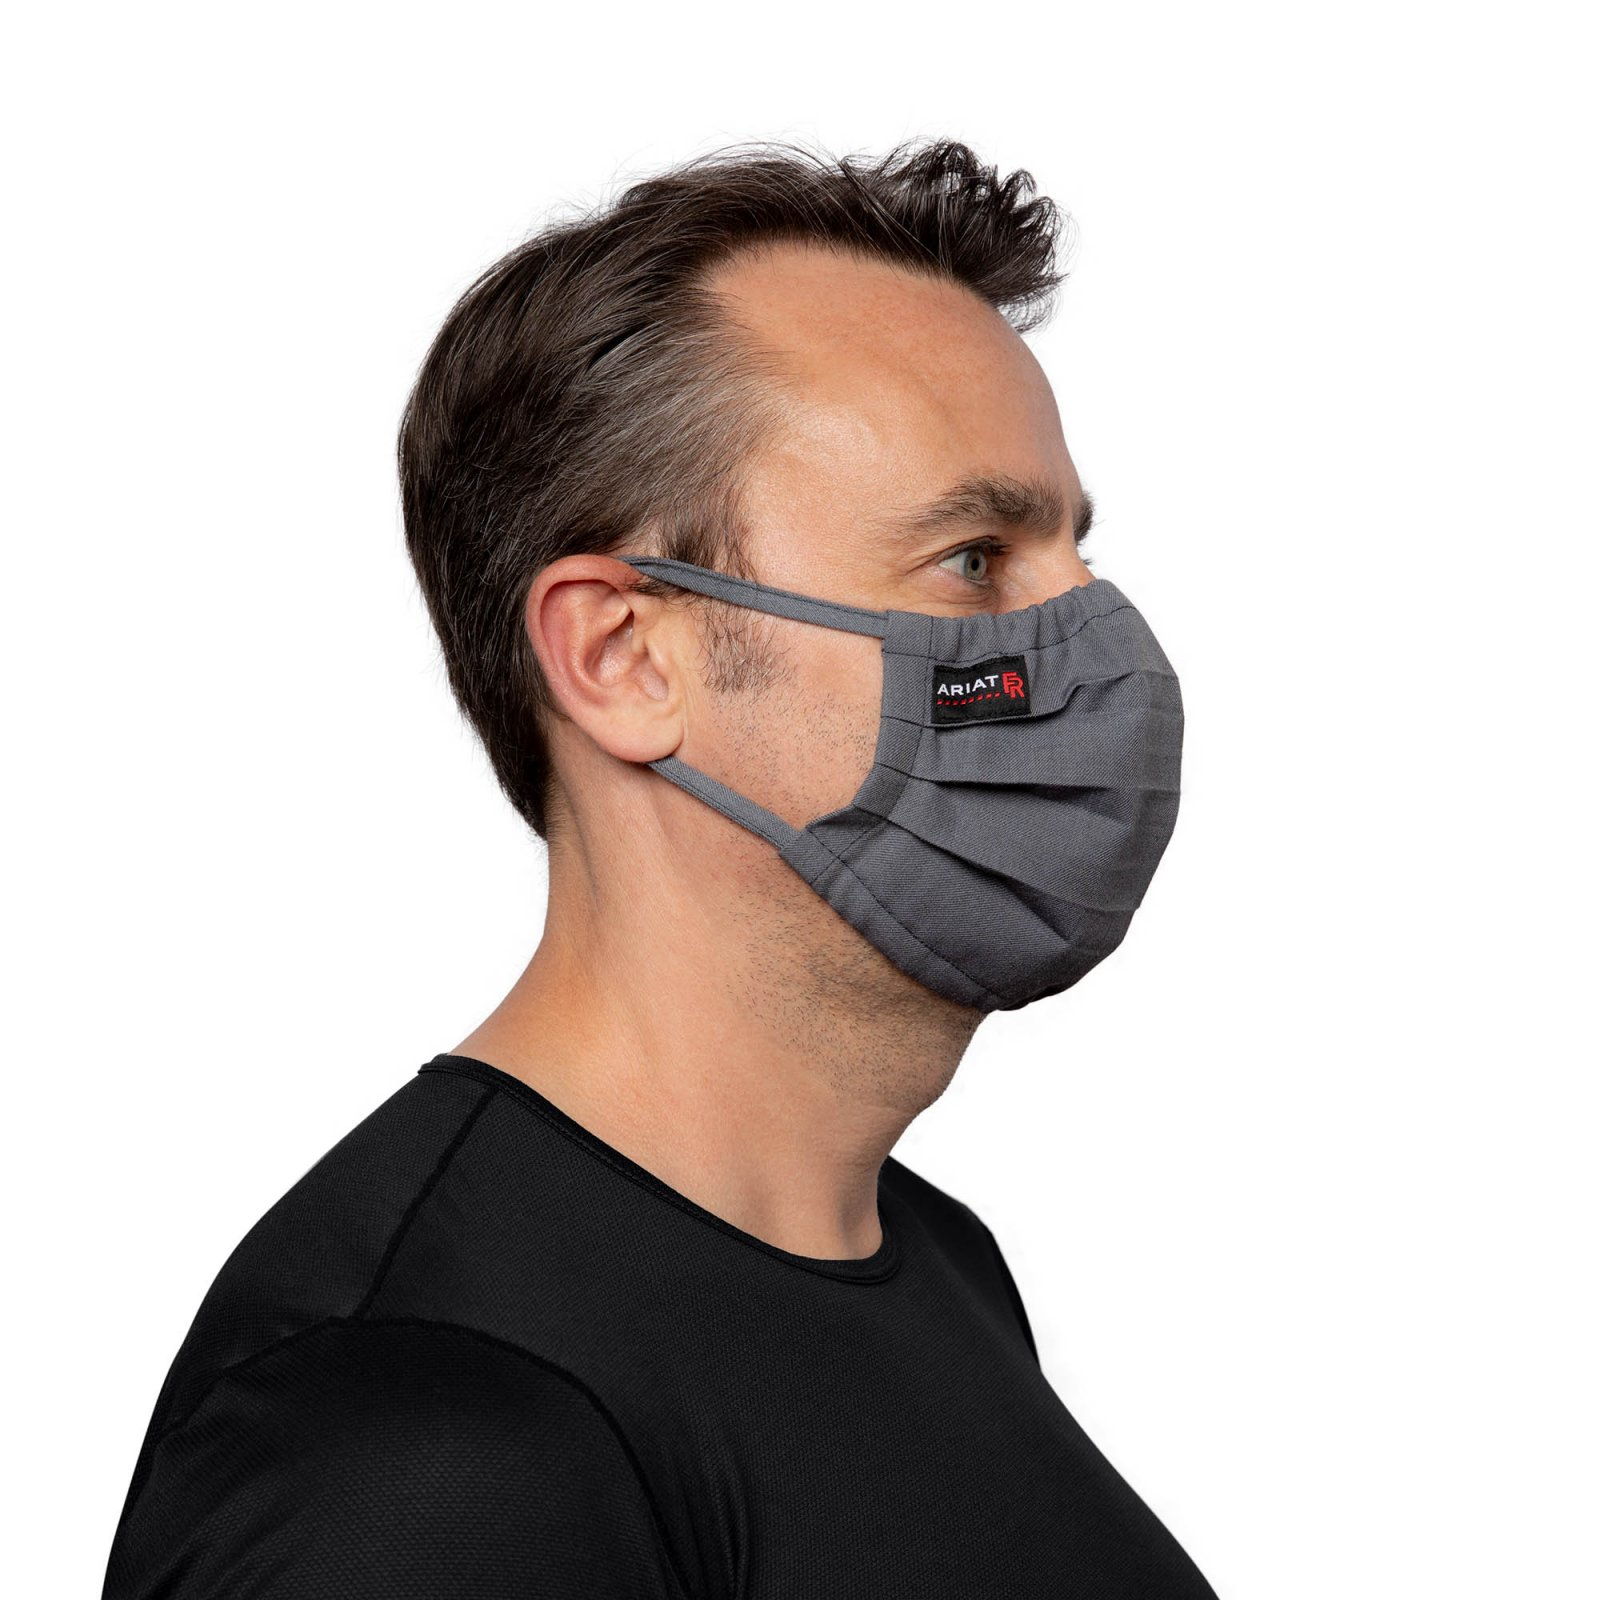 FR Face Mask from Ariat